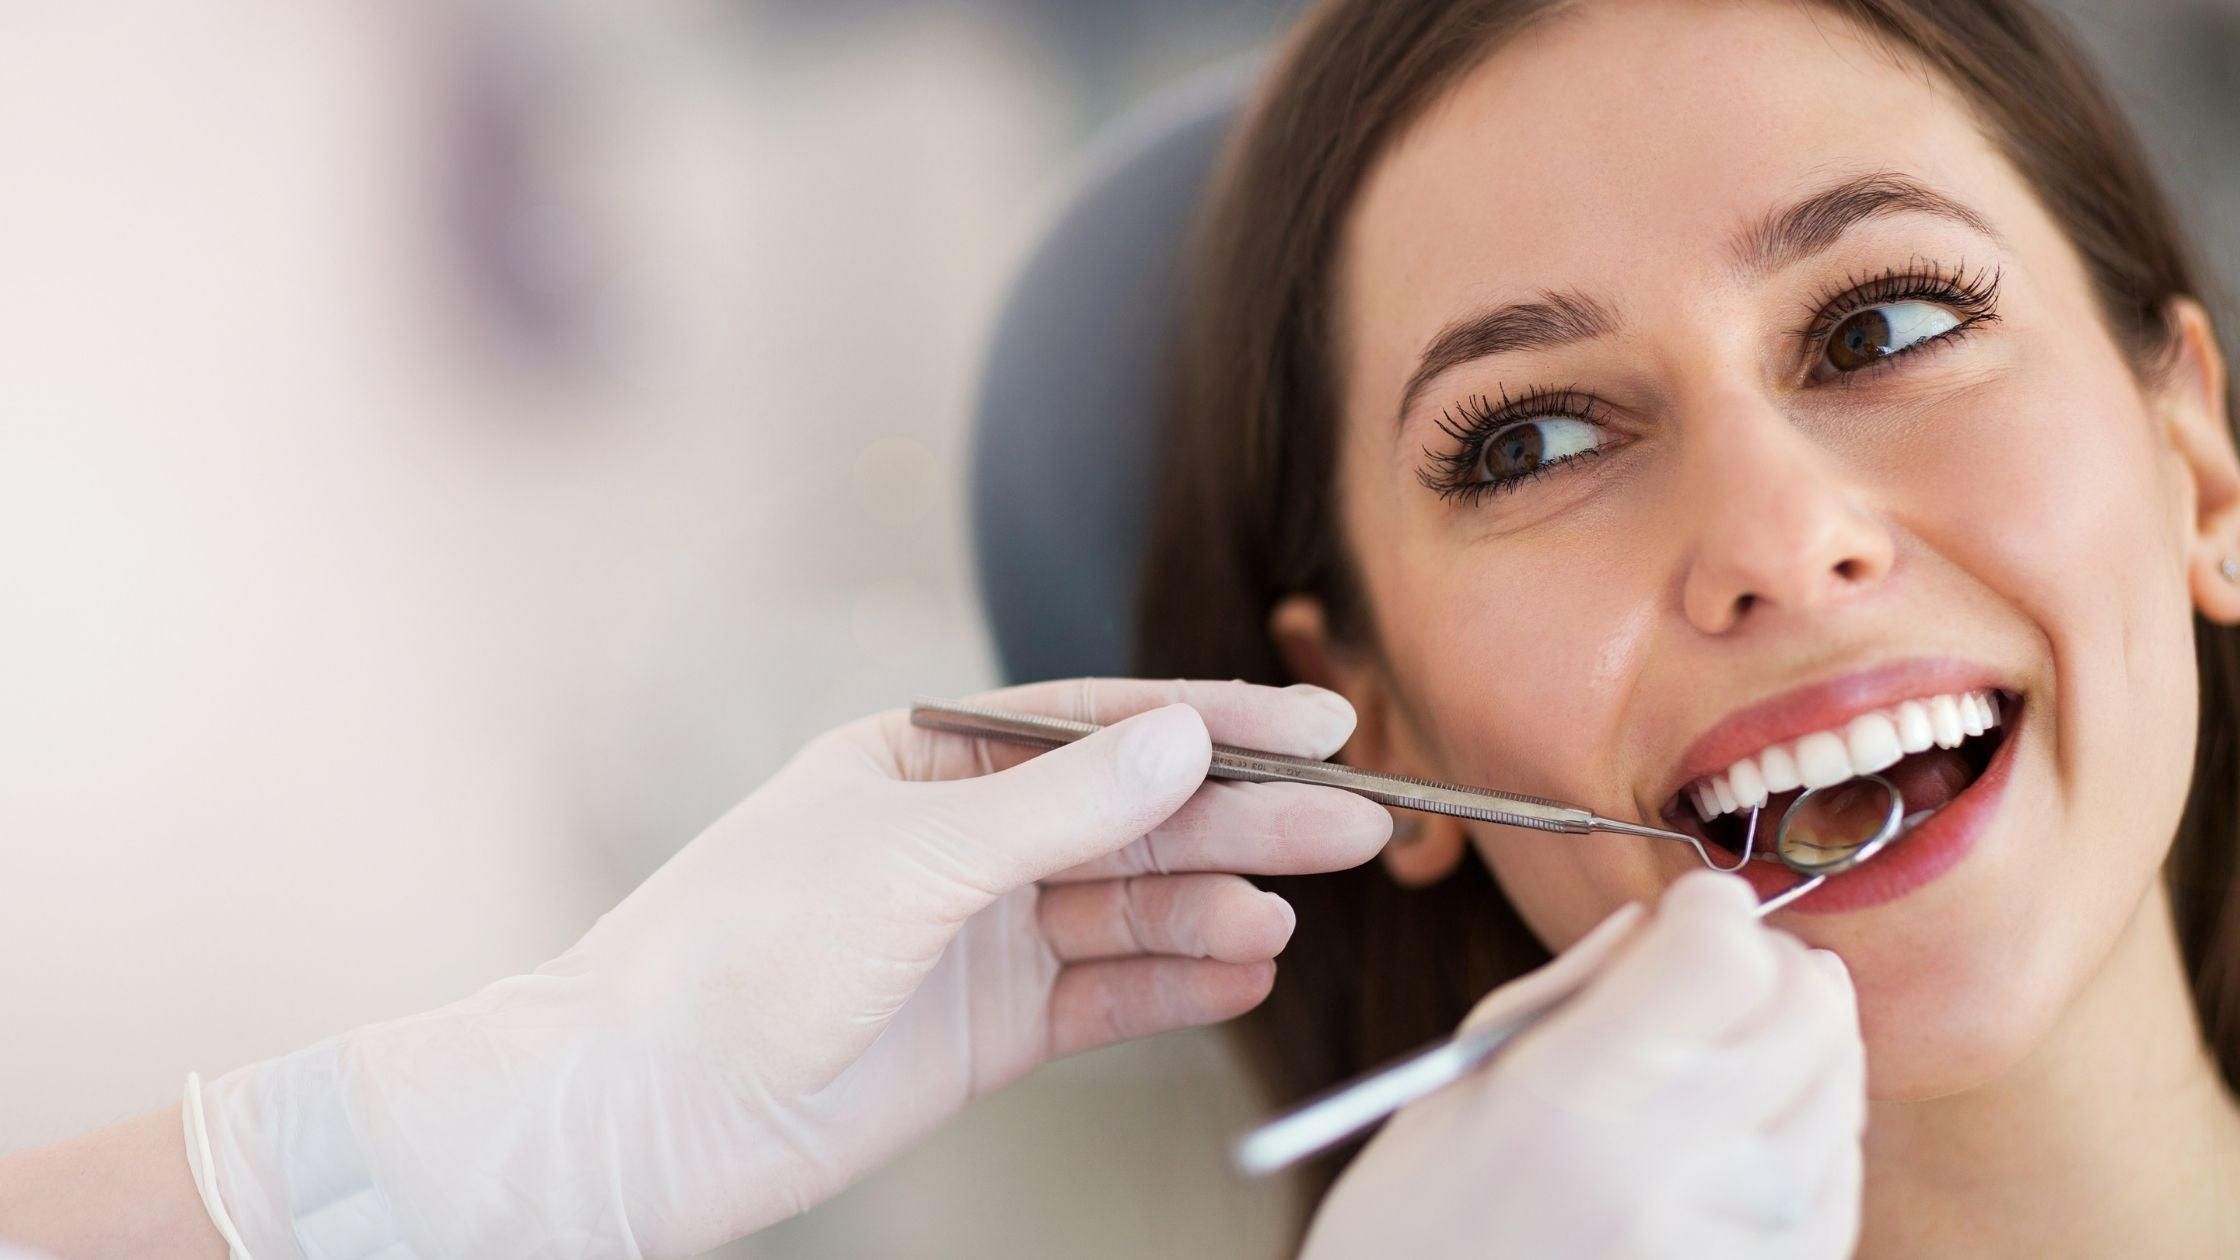 How to Find the Right Dentist?